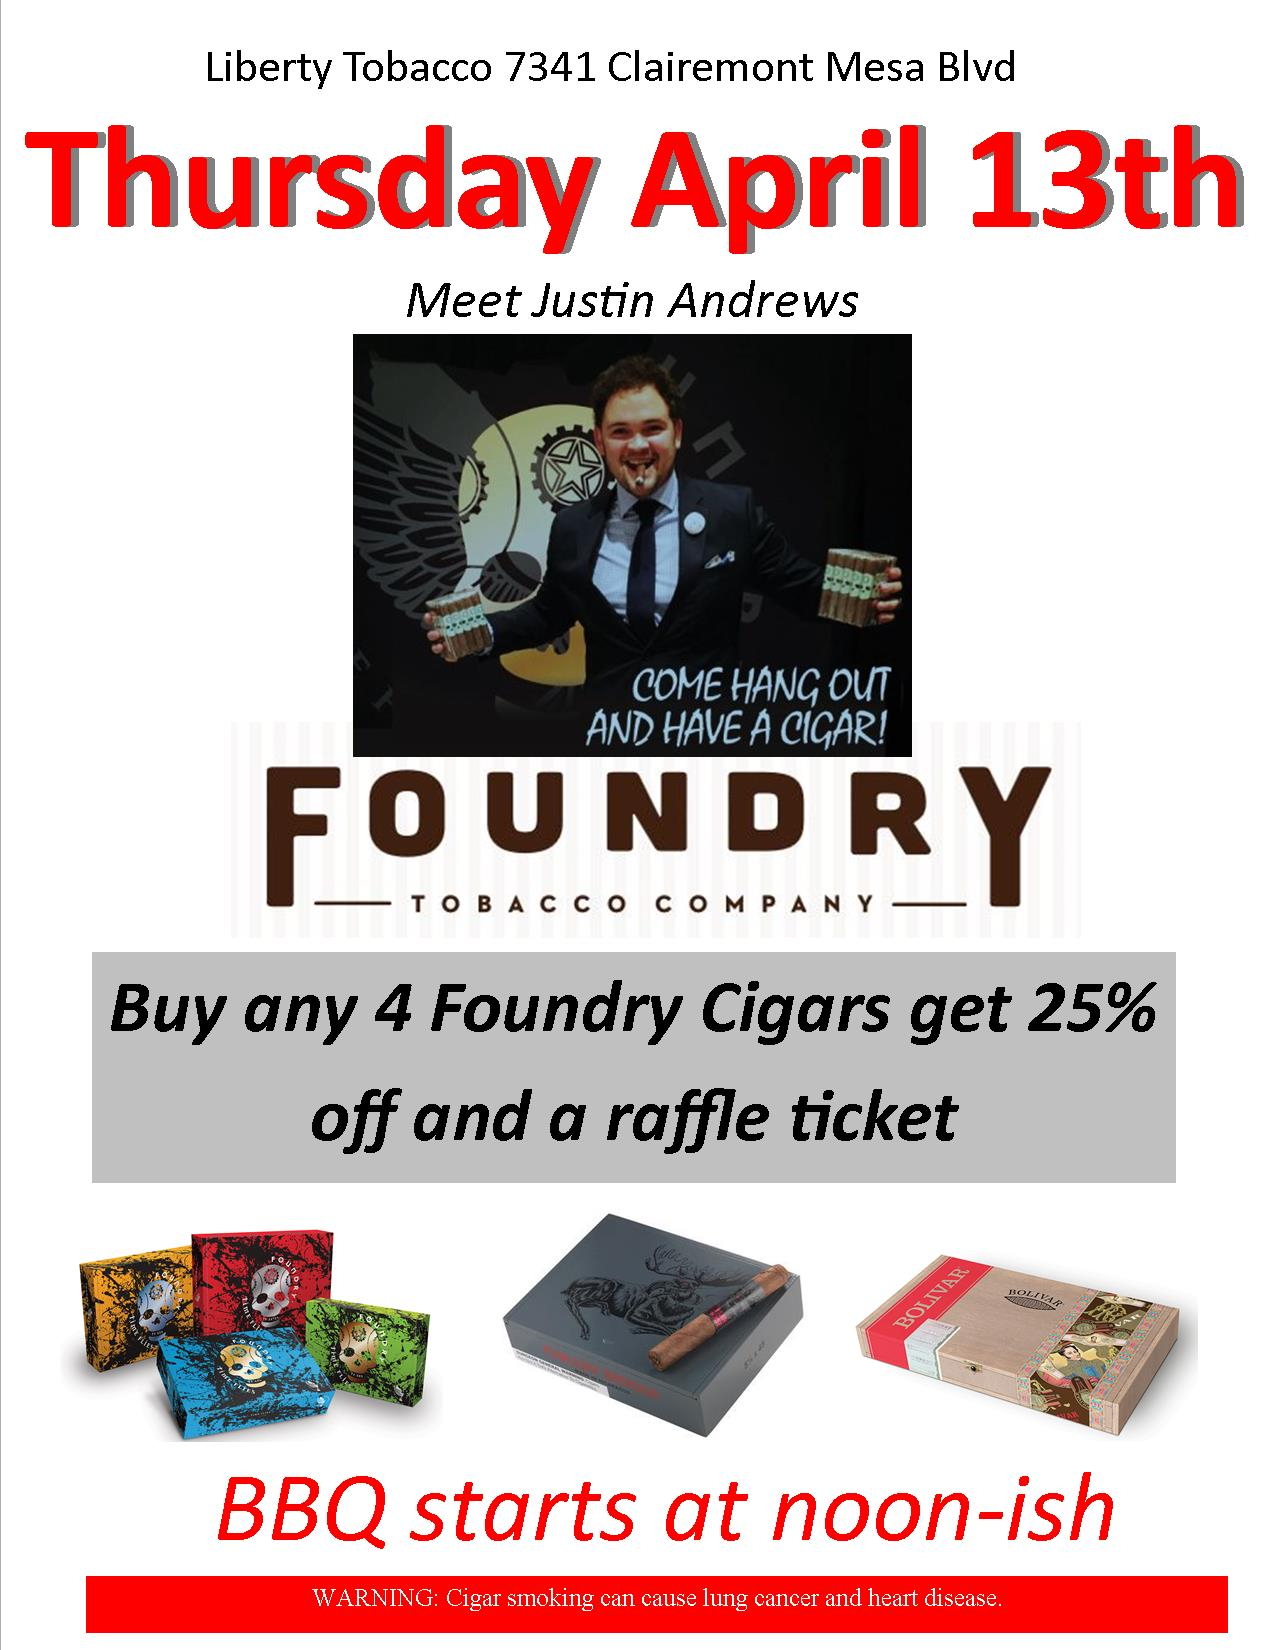 Thursday April 13th meet Justin Andrews of Foundry Cigars